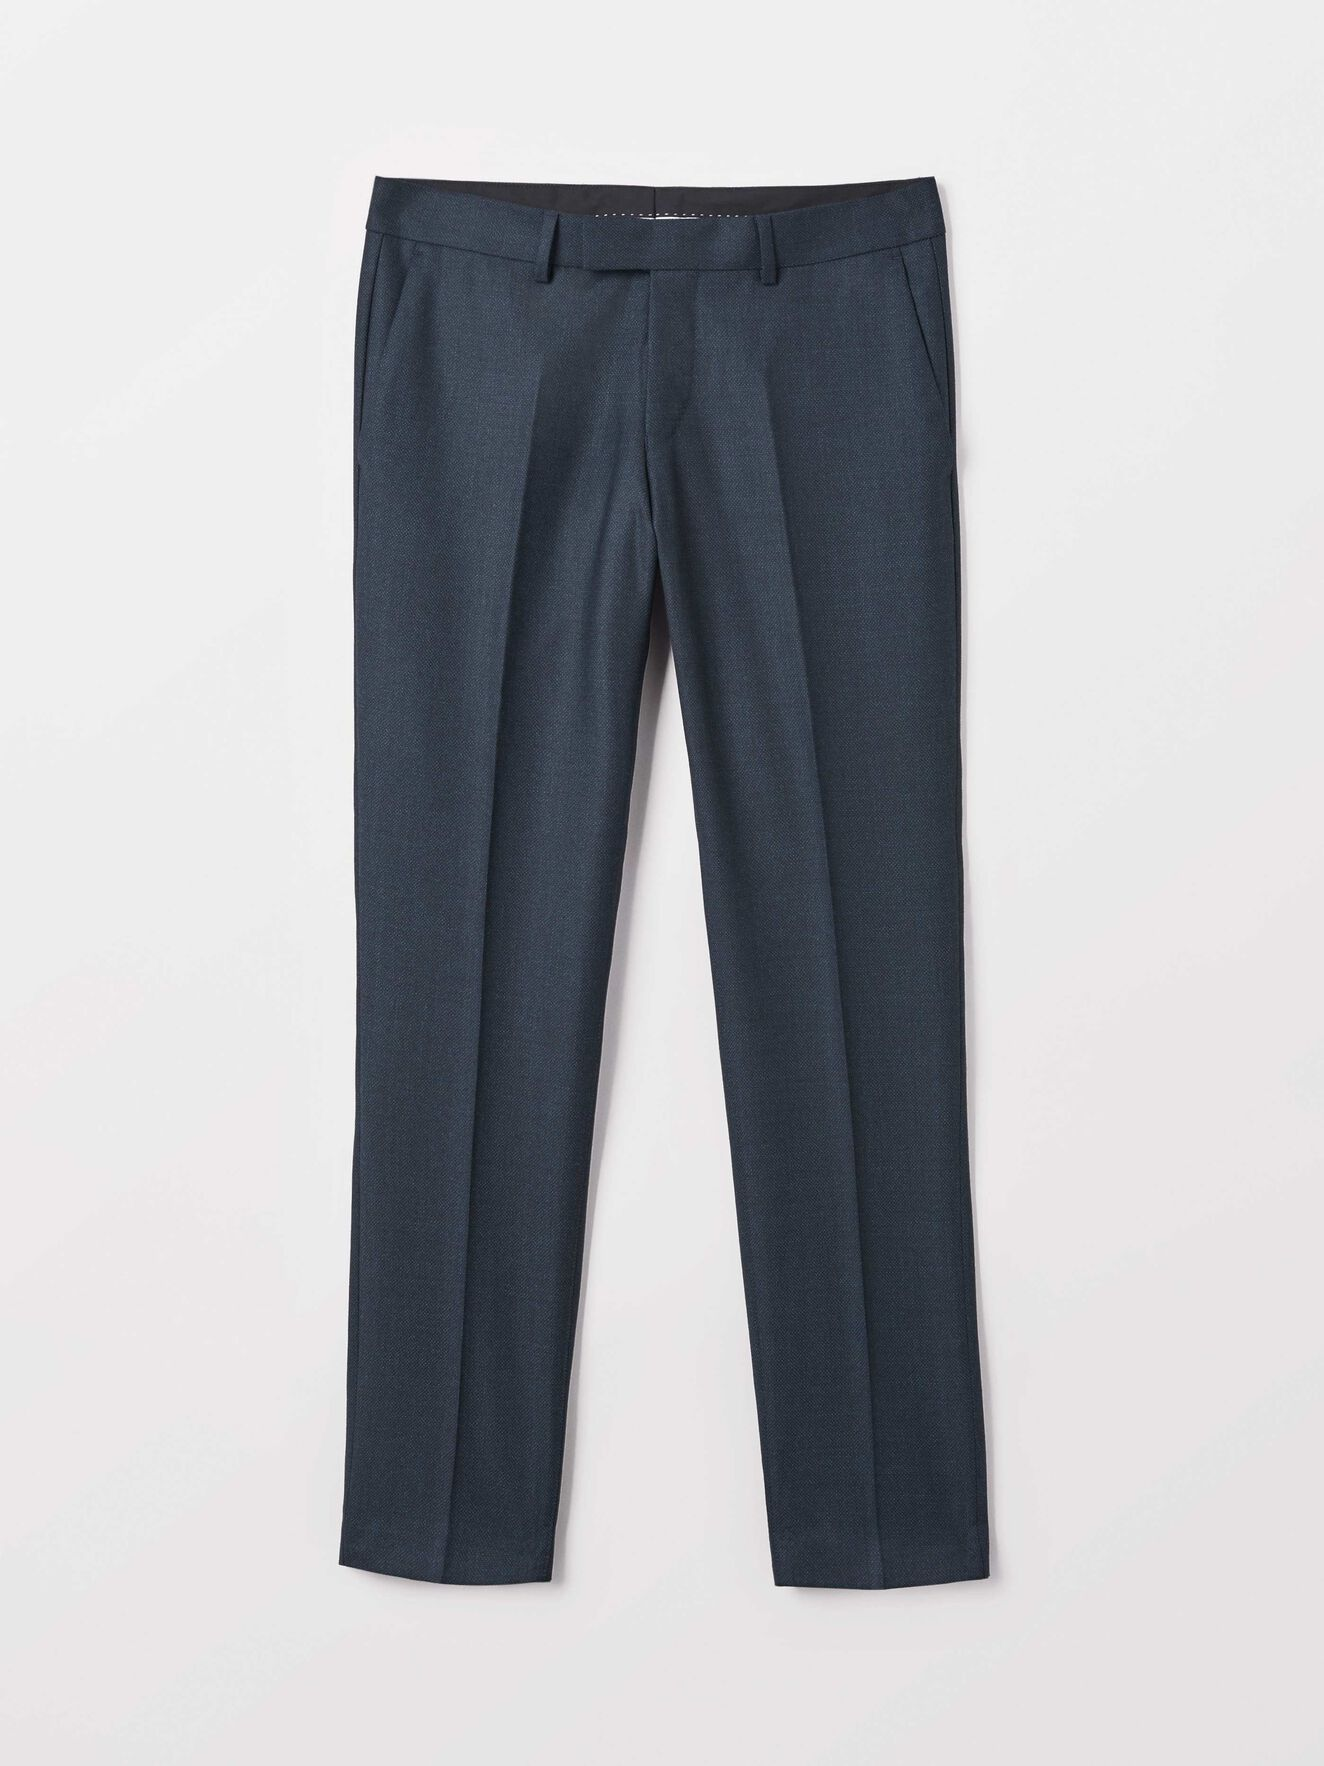 Tordon Trousers in Light Ink from Tiger of Sweden